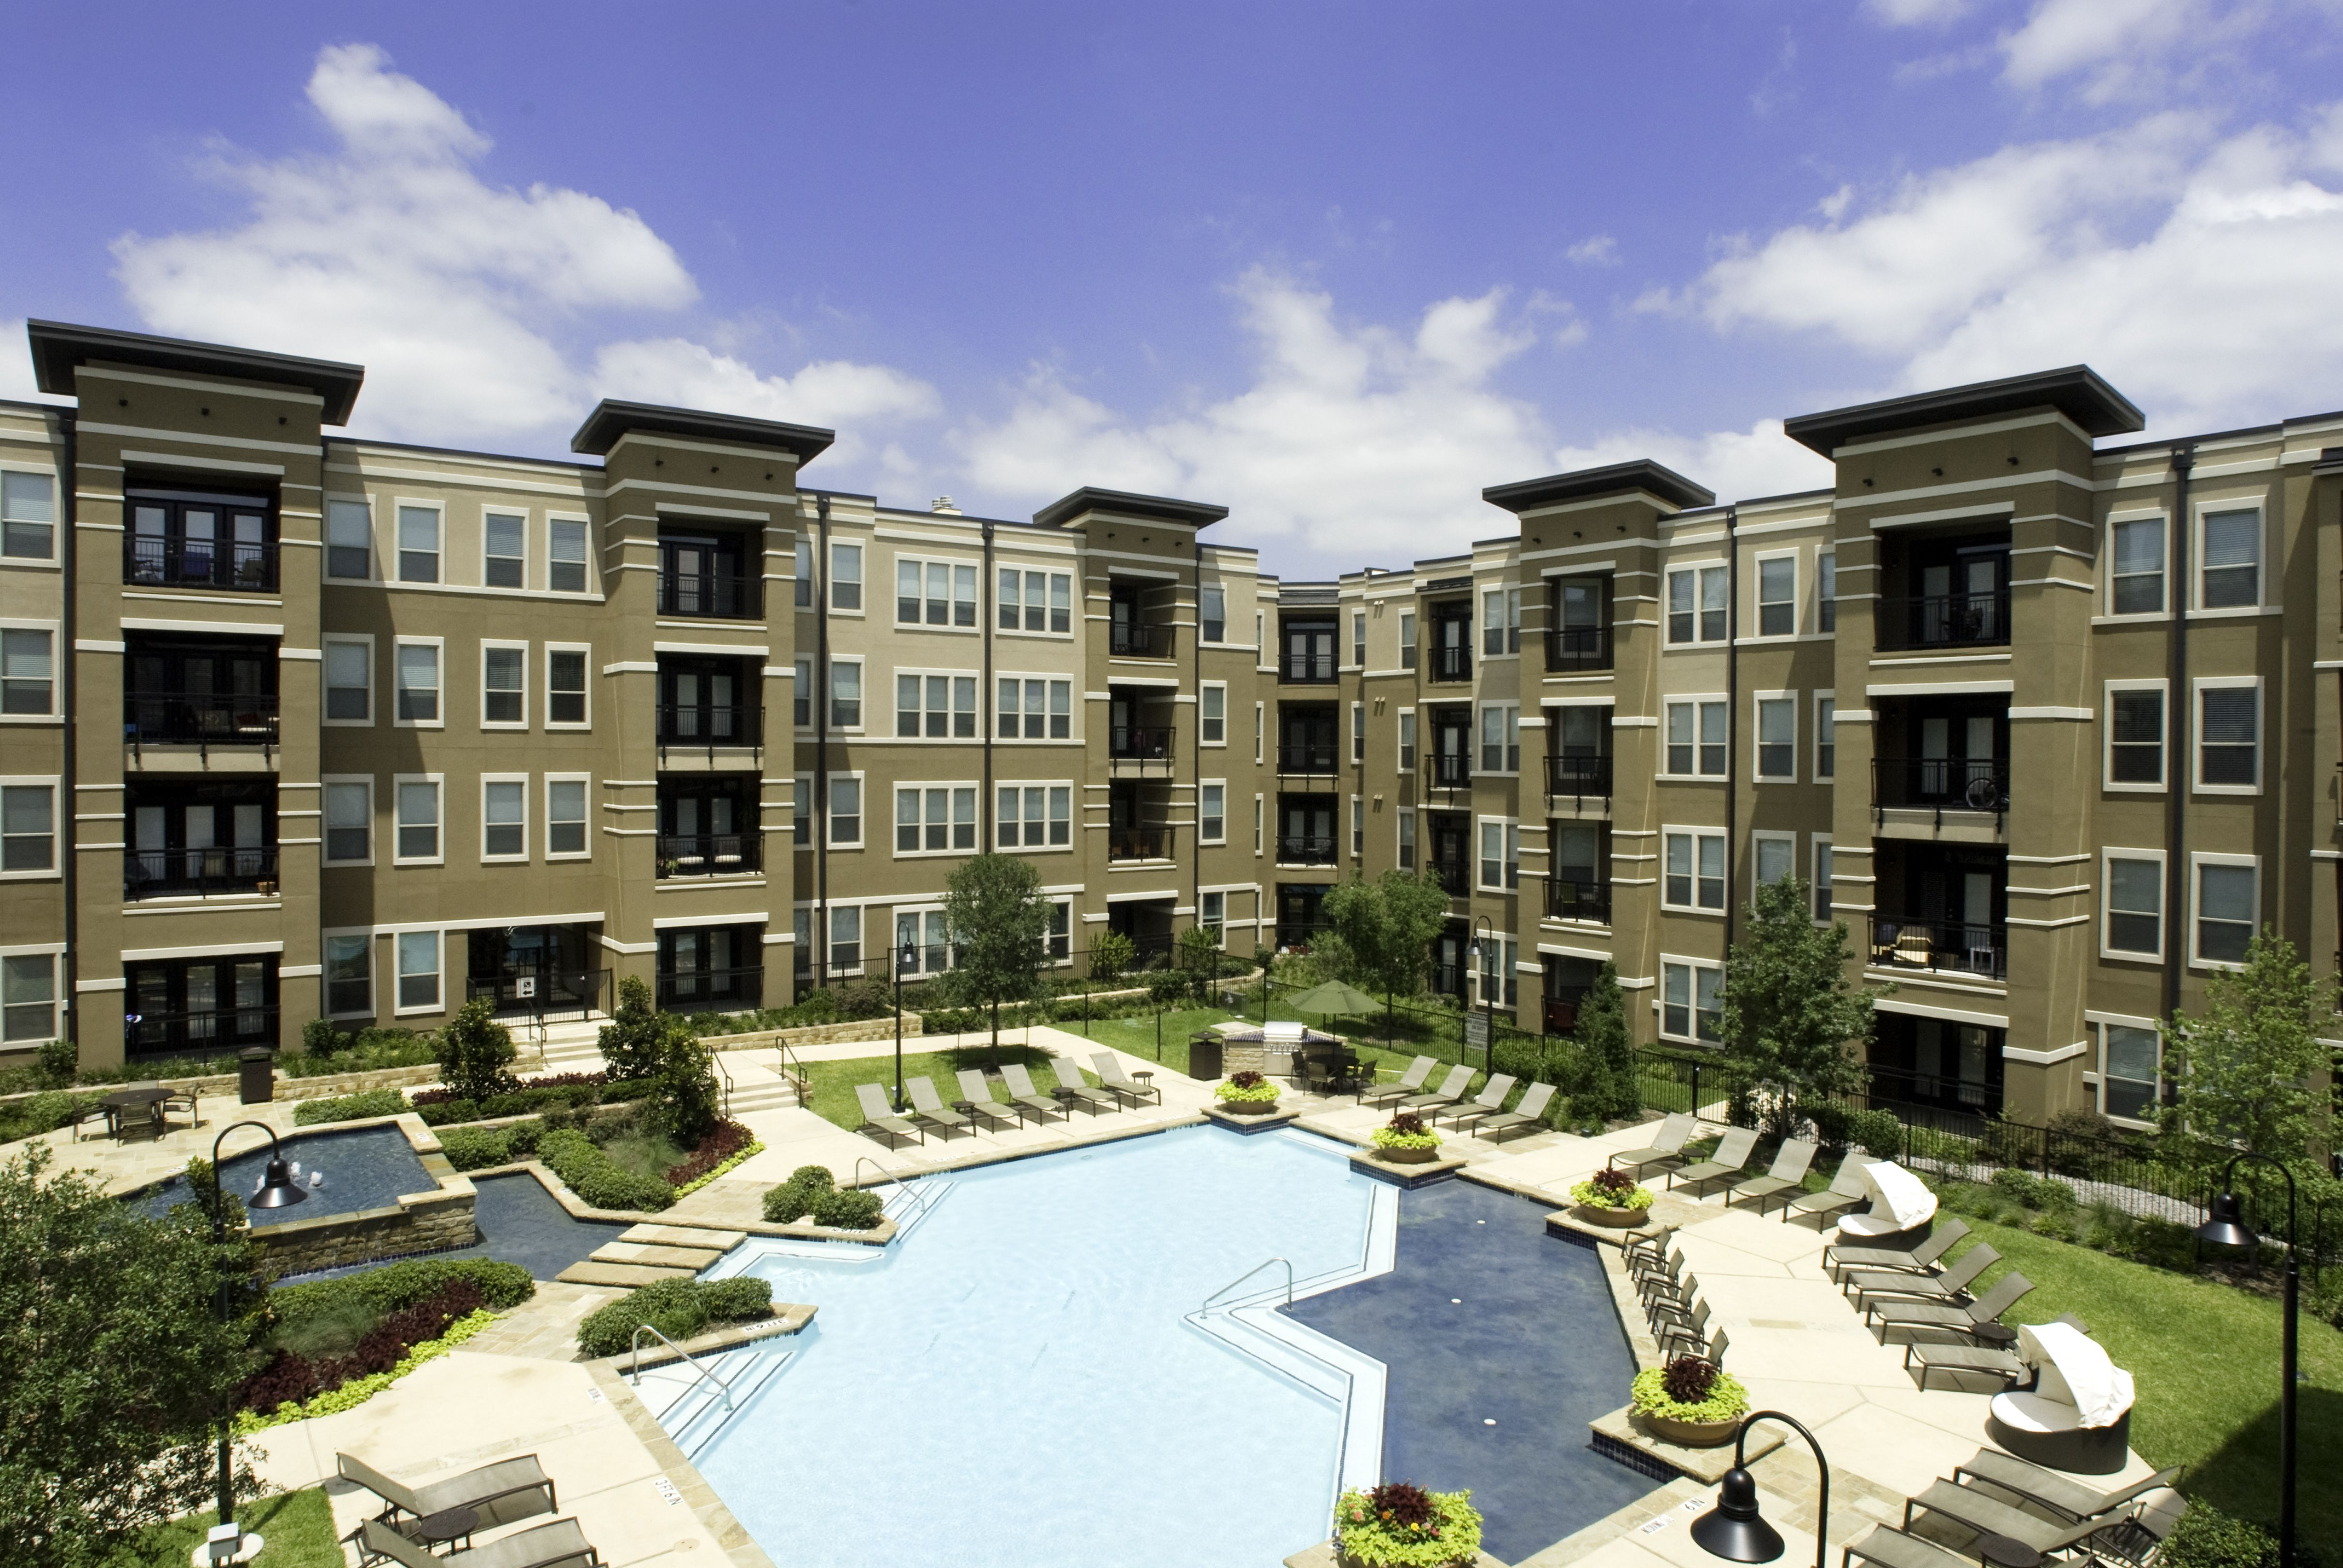 Luxury Apartment Living In Fort Worth Tx Find Your Perfect Home Today Luxury Apartments Cool Apartments Mansions